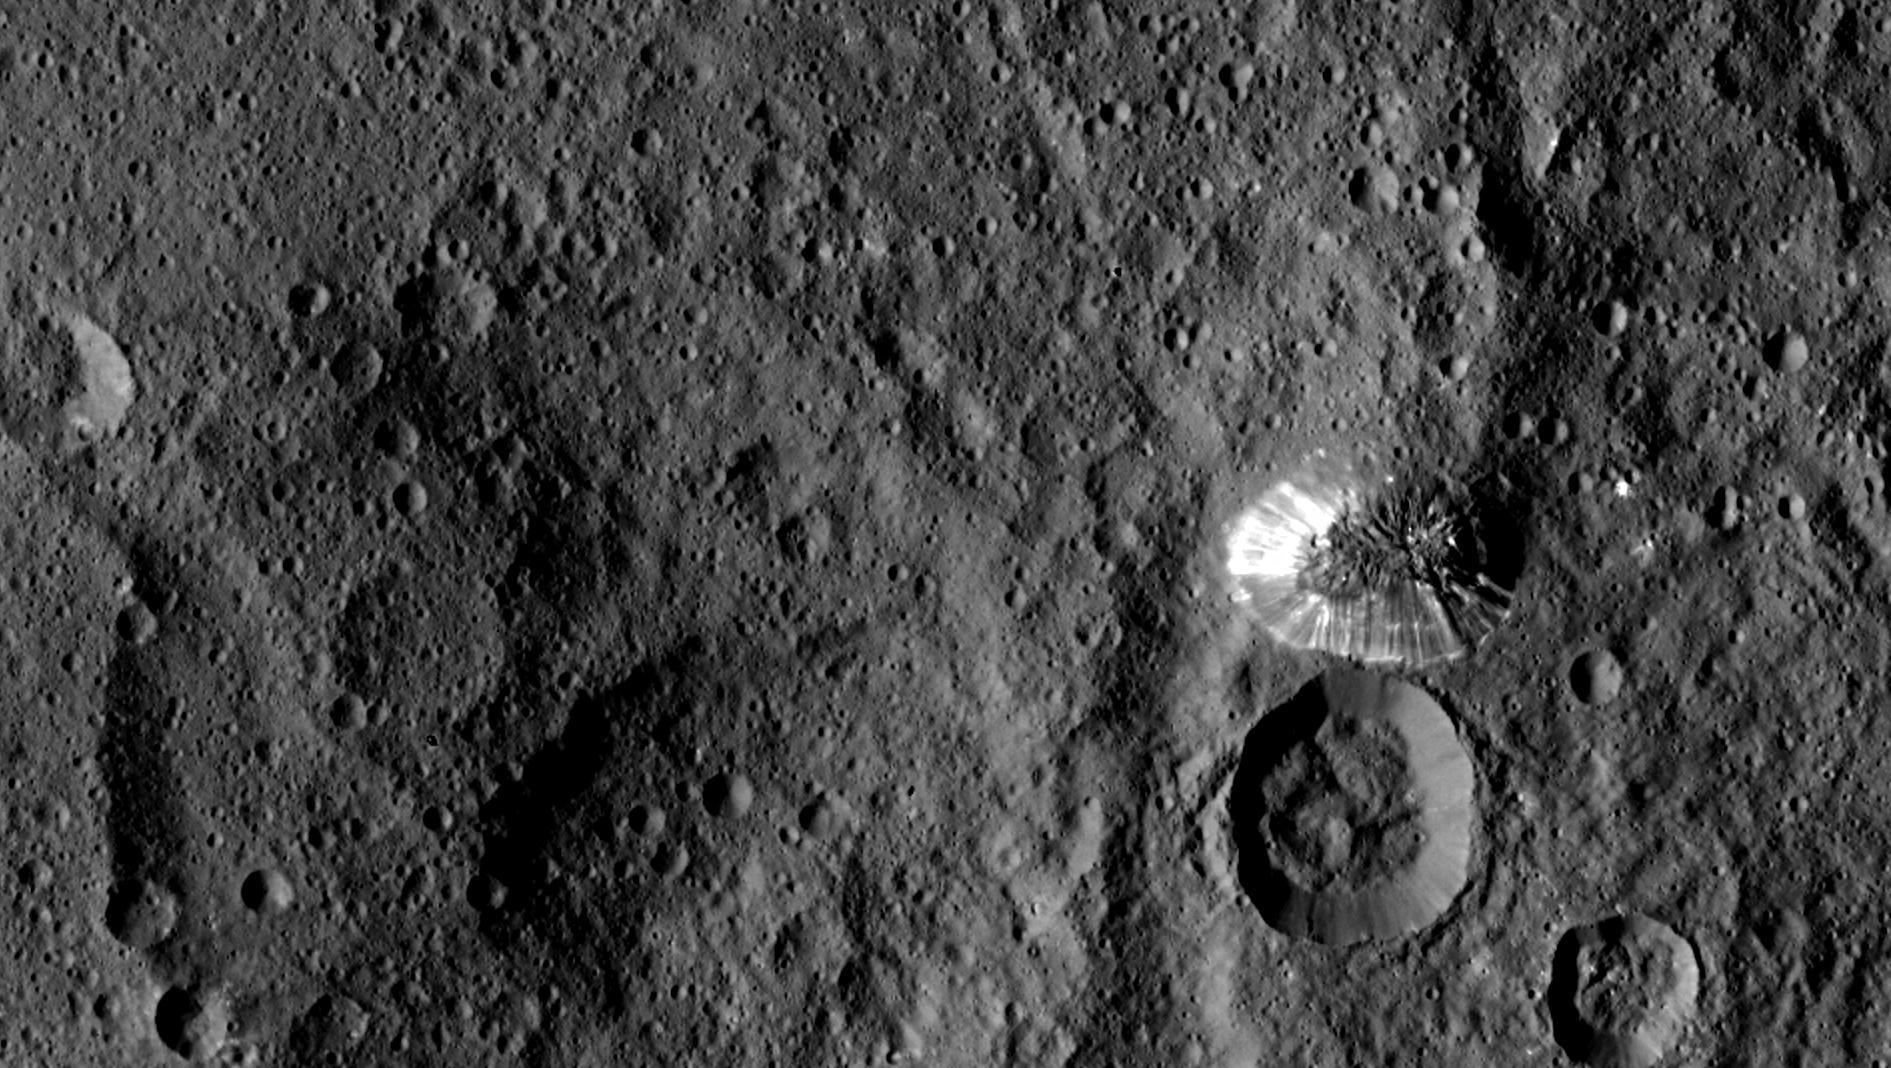 Rocks and craters on Ceres